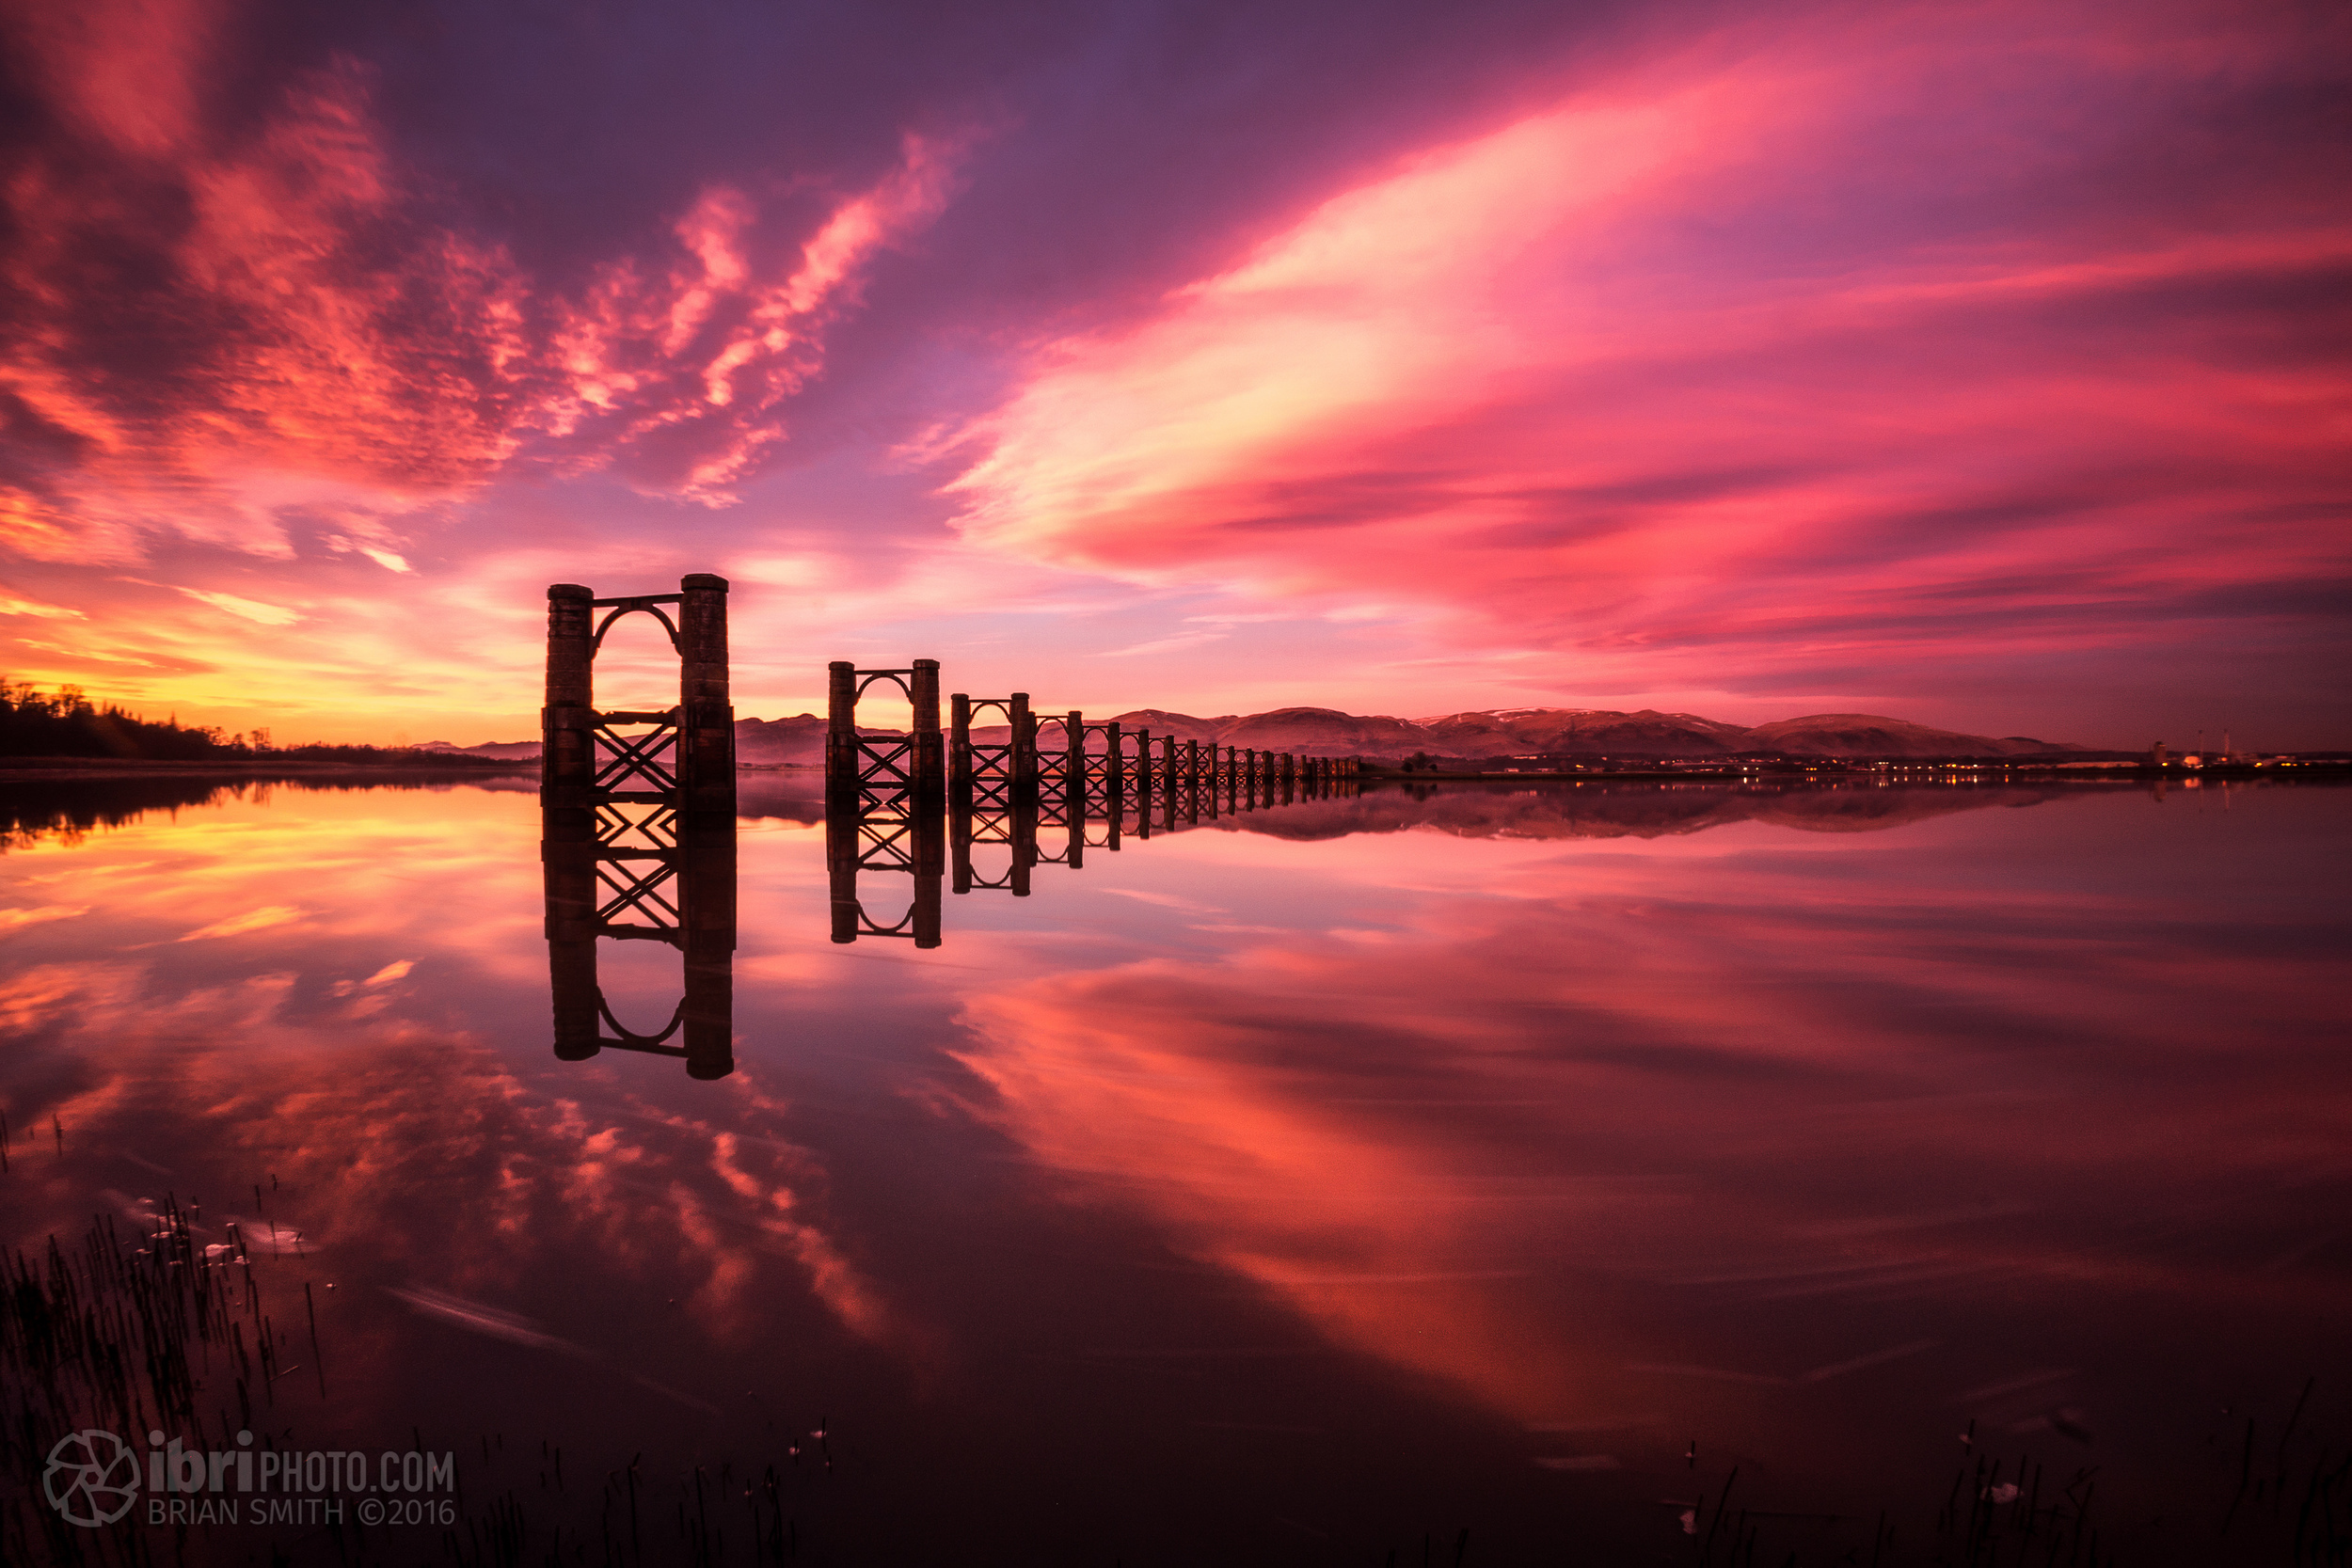 February fired up. The remaining pier supports of the old Alloa Swing Bridge that used to carry trains over the River Forth from Alloa towards Throsk.